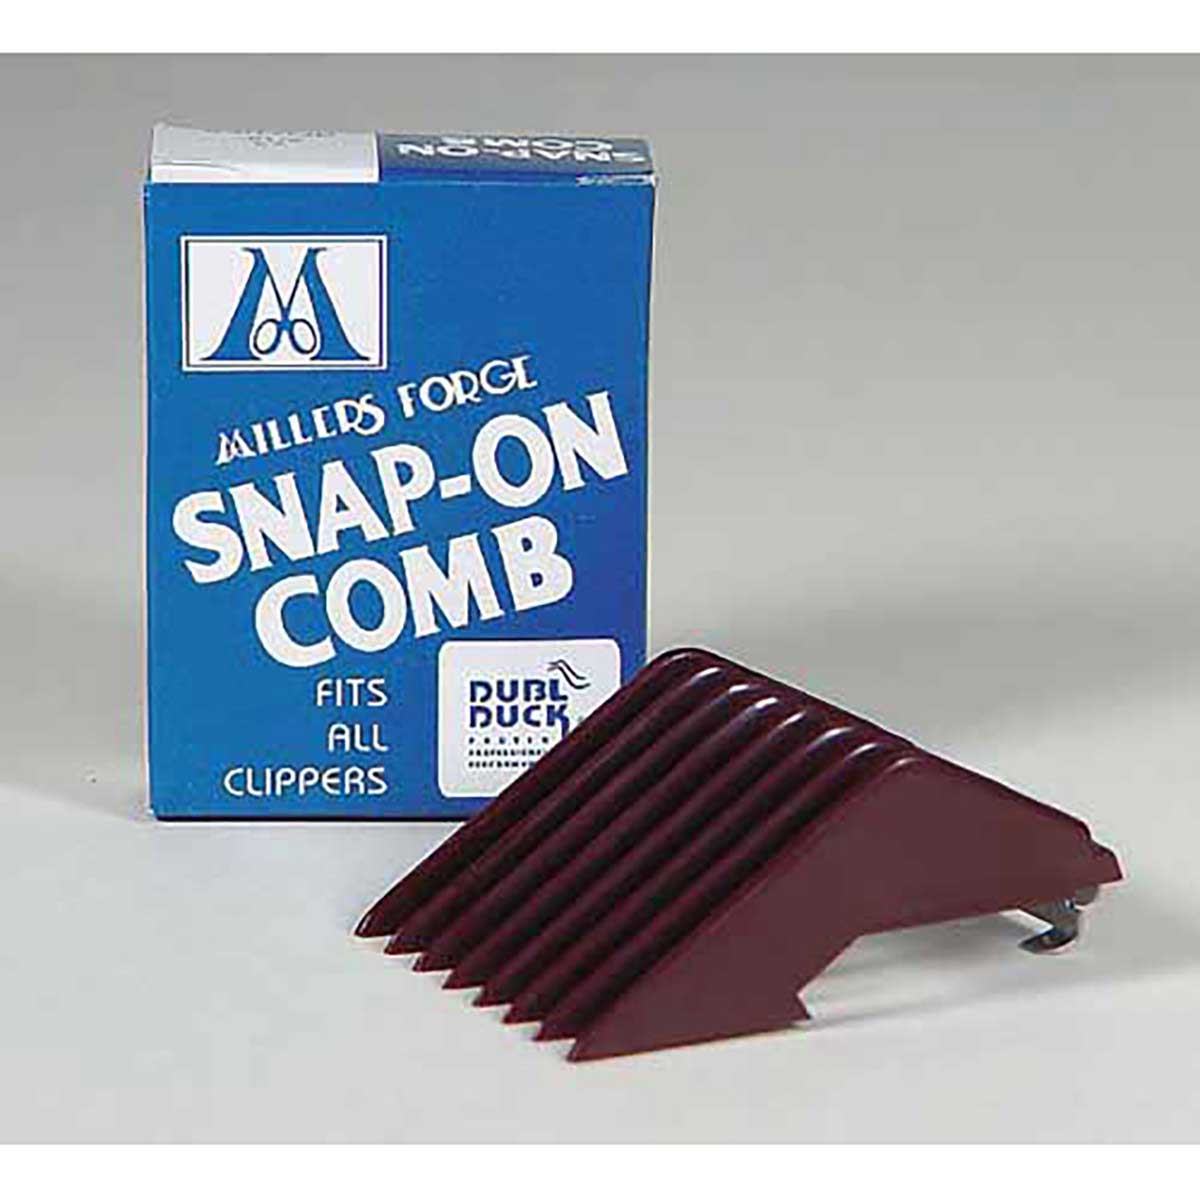 Millers Forge Snap-On Comb for Clippers - Size 1 Cuts 5/8 inch